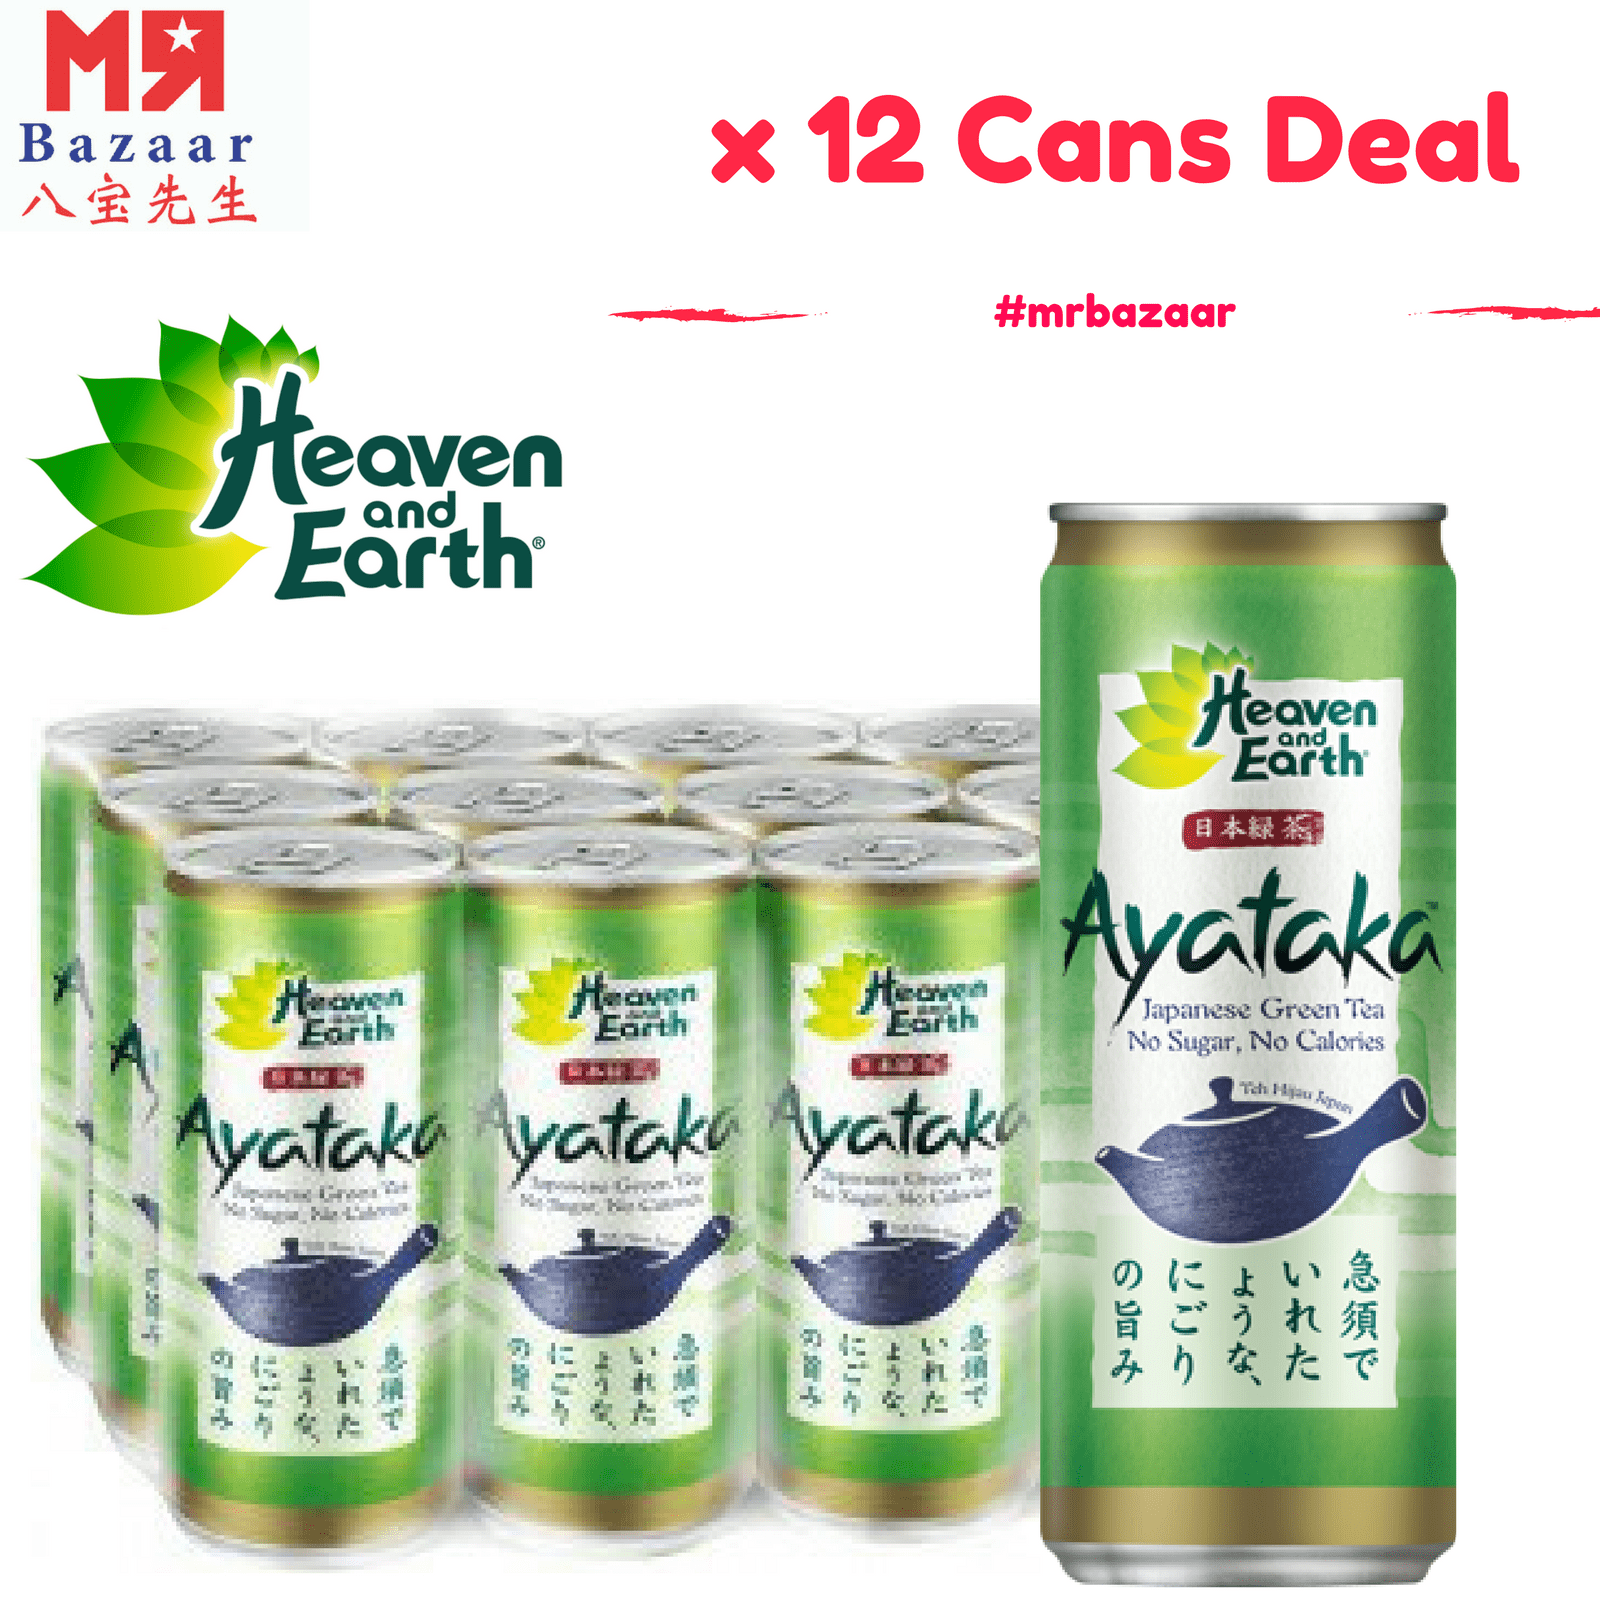 Heaven & Earth Ayataka Jap Green Tea (Sugar Free/No Calories) x 12 Cans (300ml)